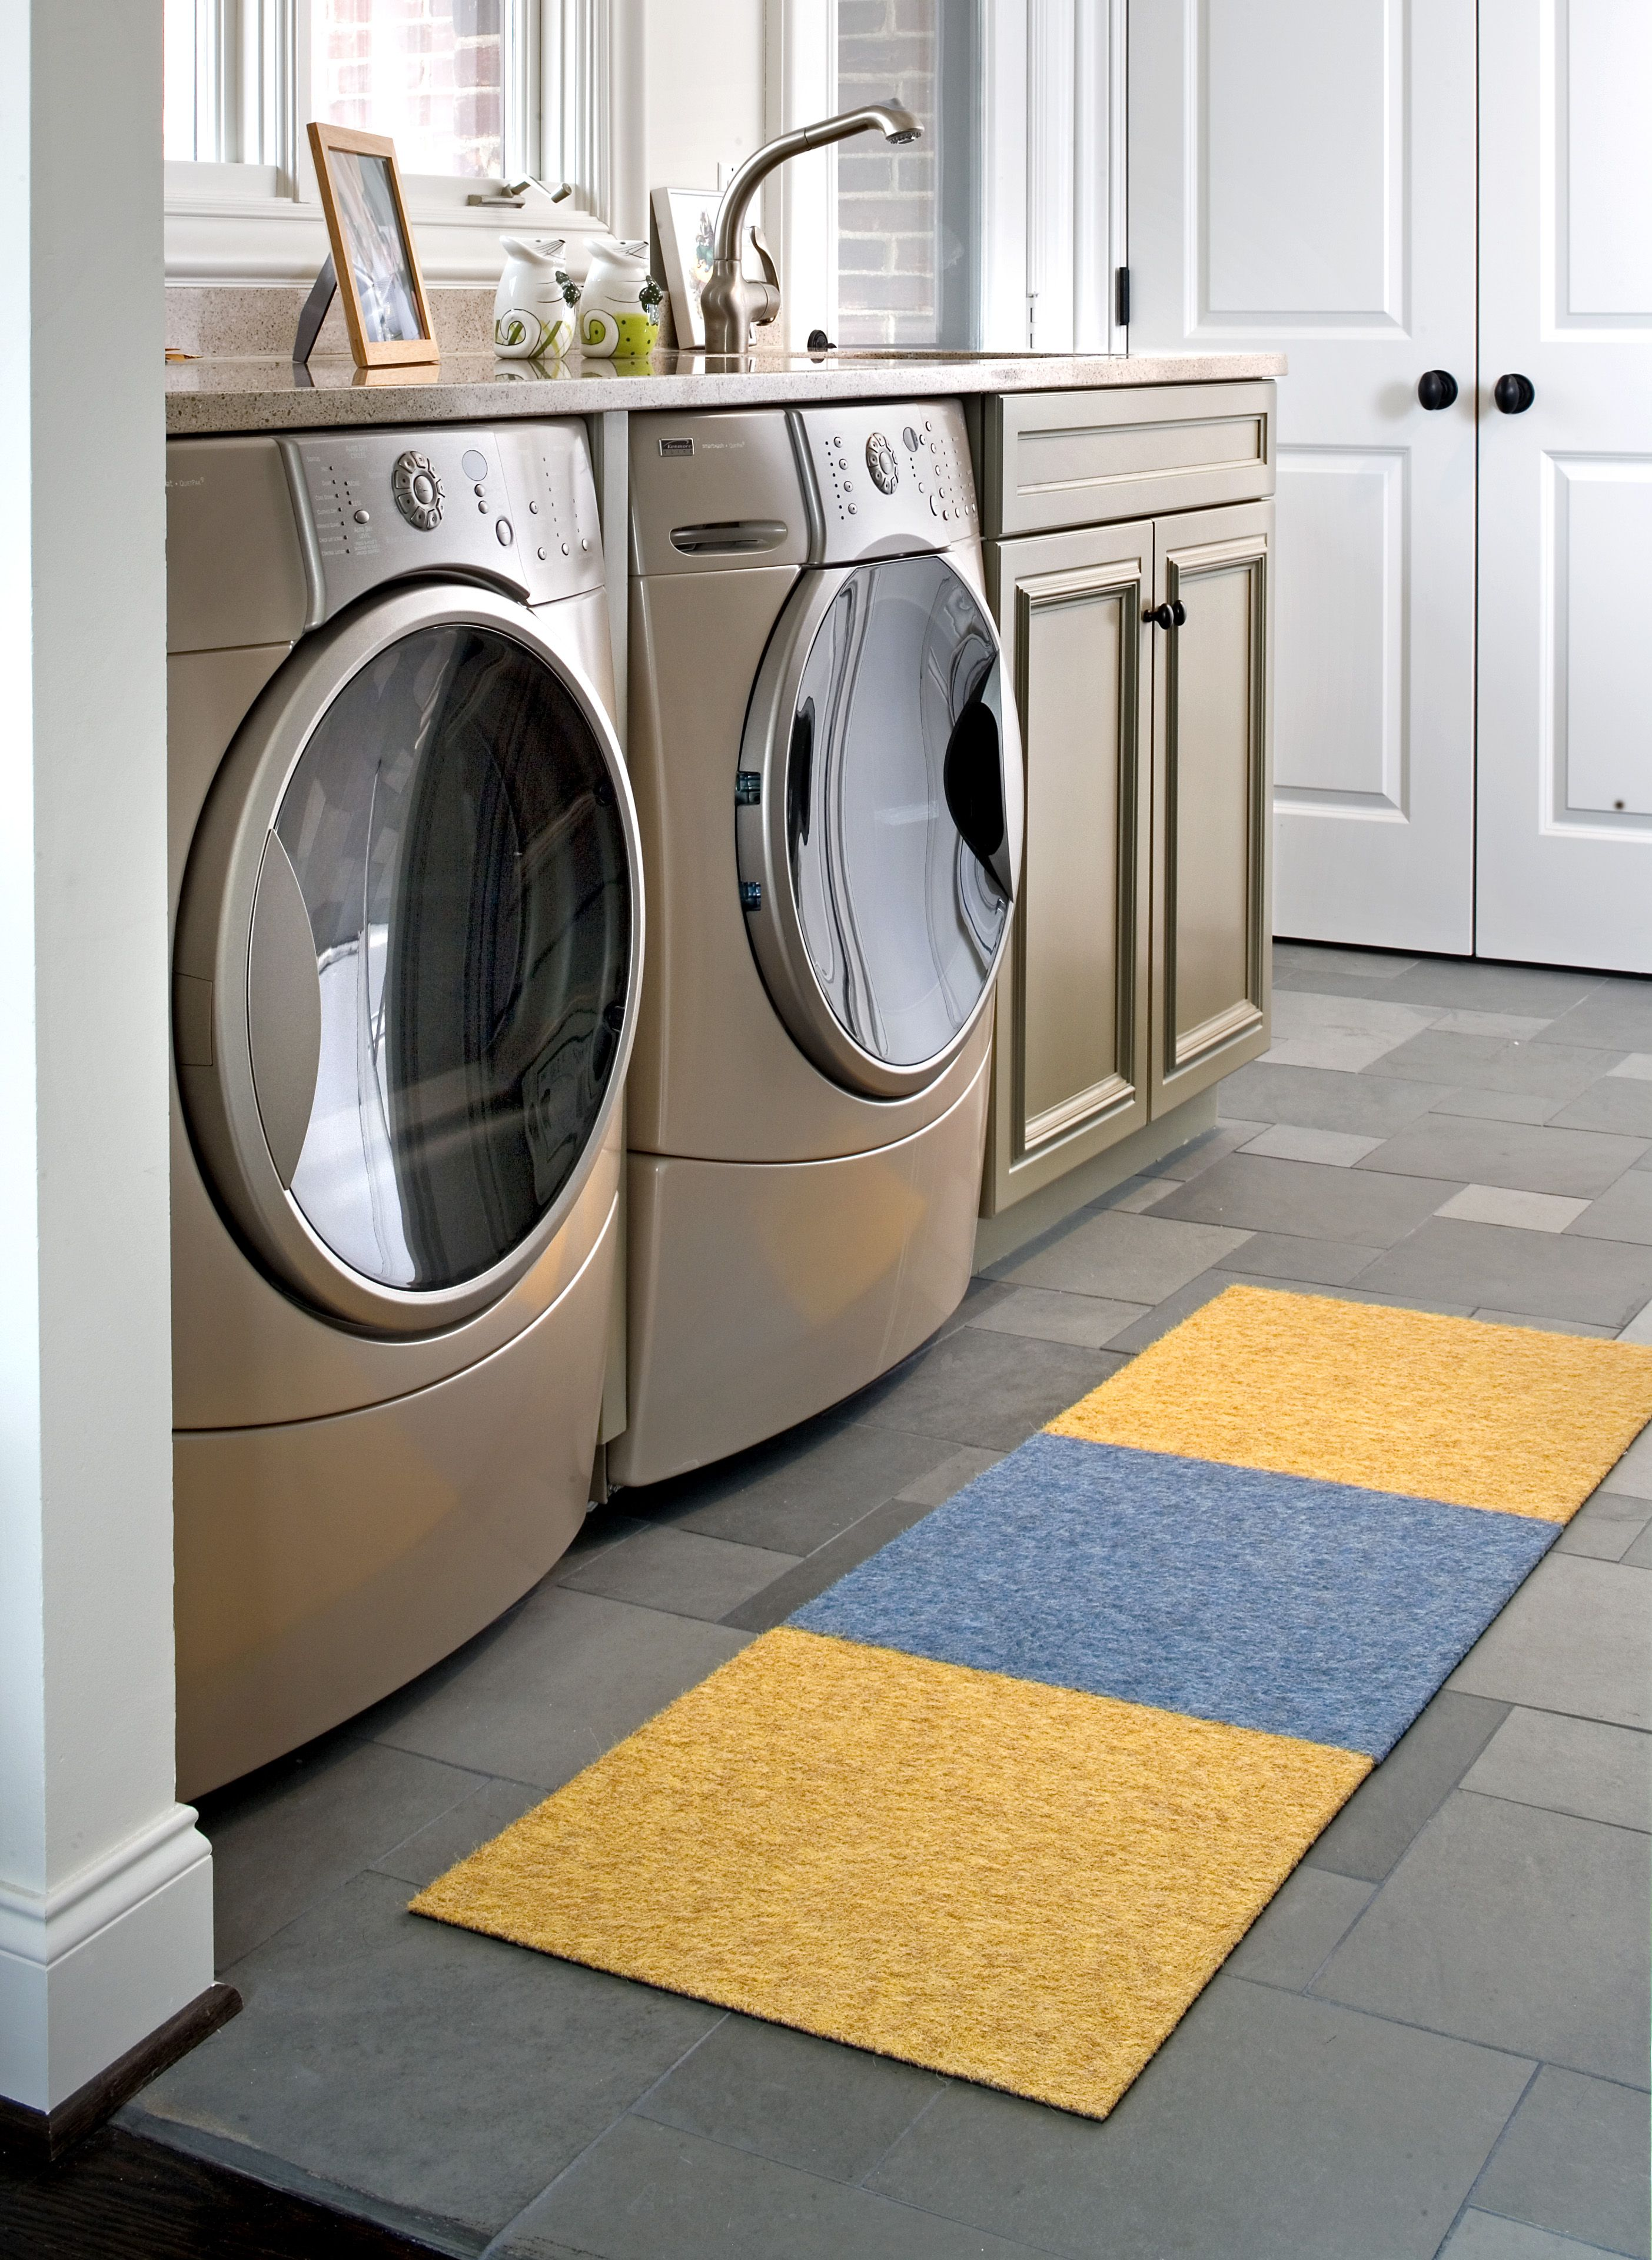 Our Carpet Squares Make Perfect Laundry Room Rugs Laundry Room Organization Perfect Laundry Room Room Organization